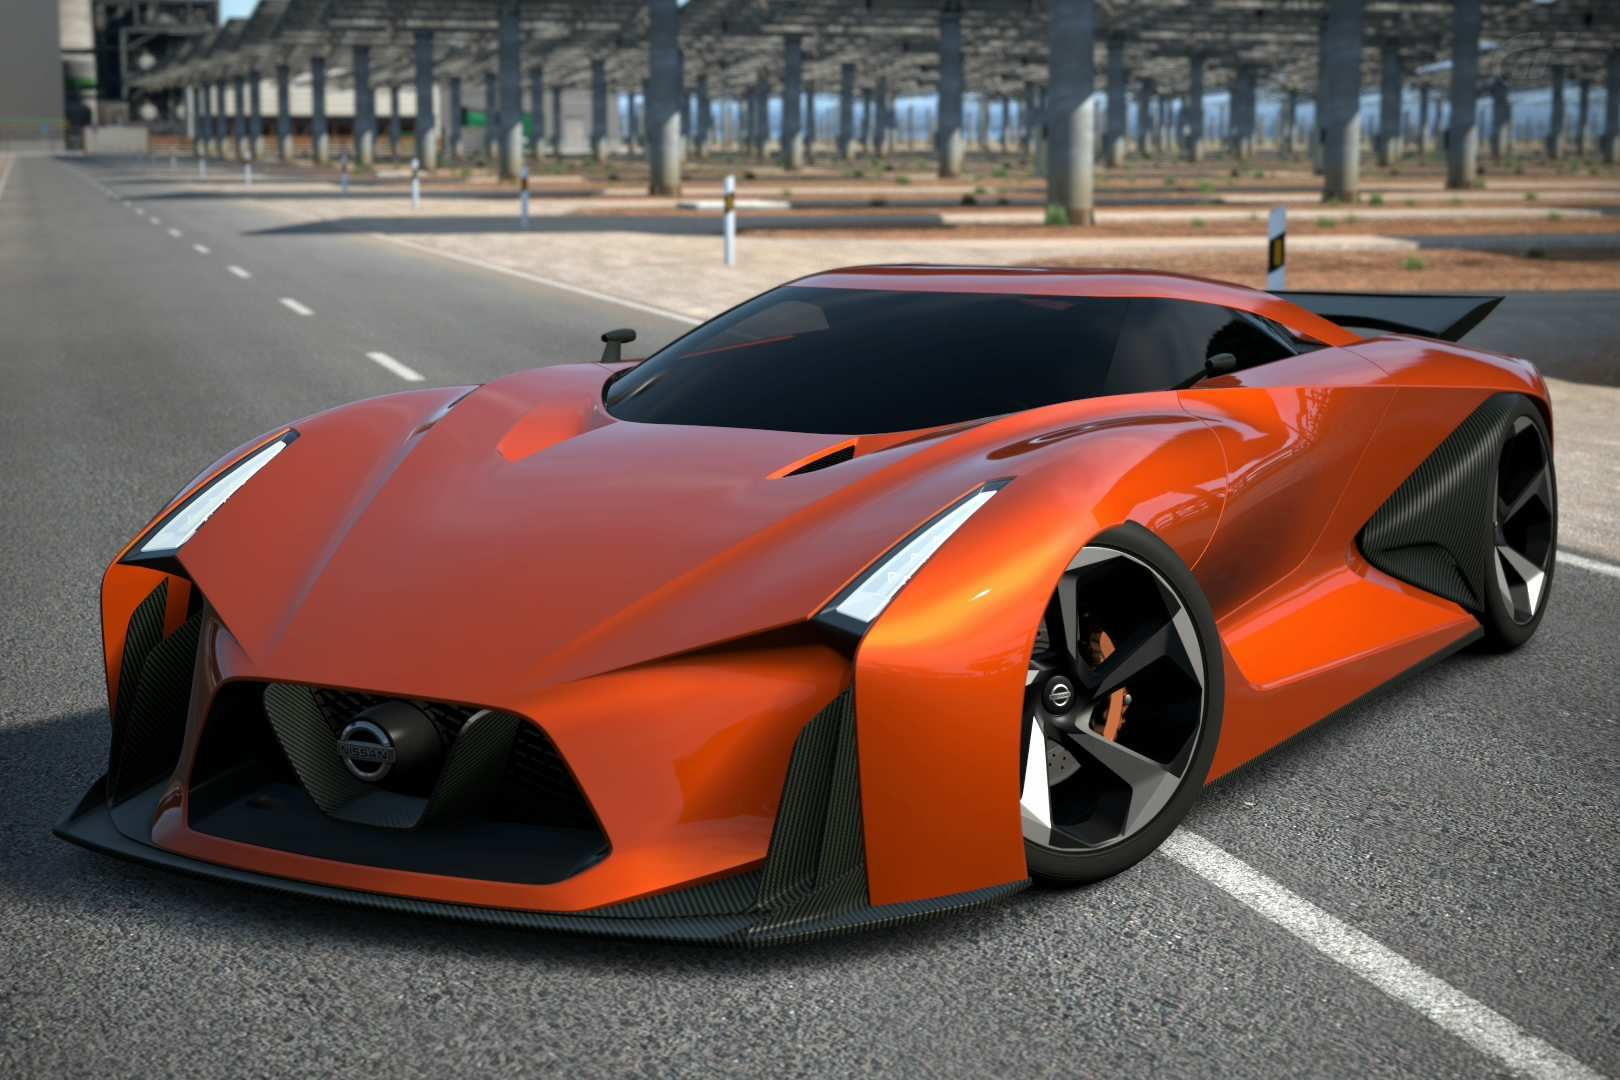 13 All New Nissan Concept 2020 Top Speed Picture